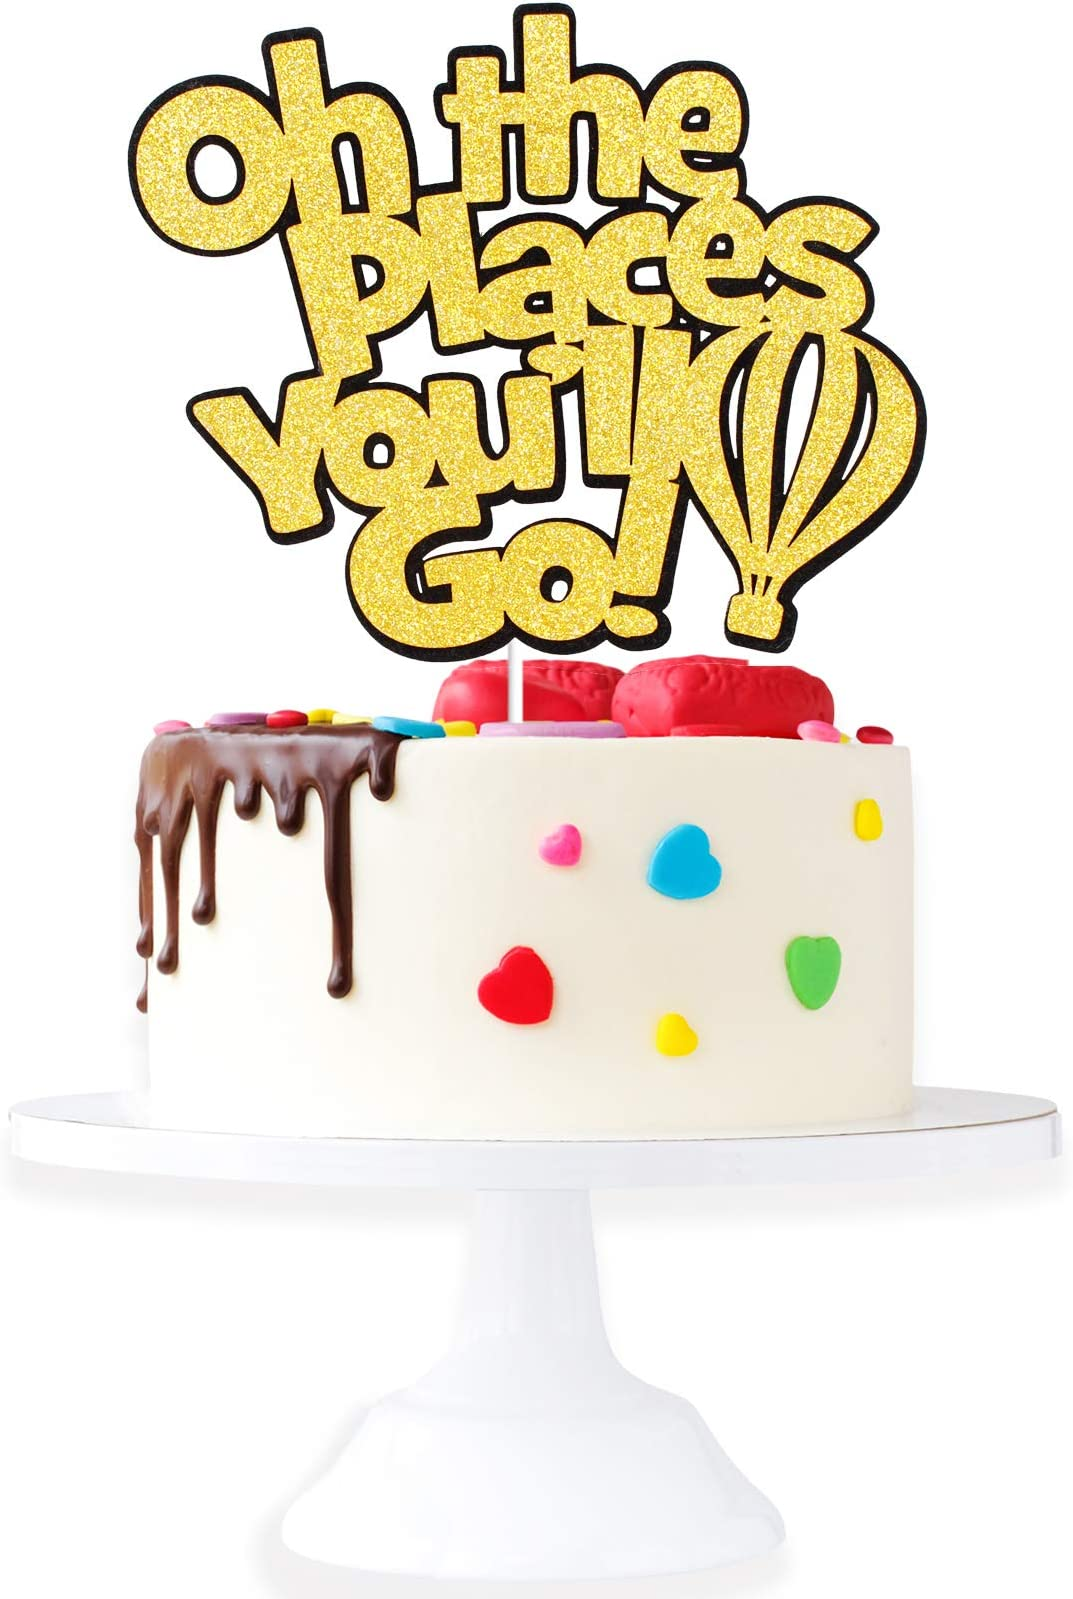 Cake Topper Adventure Awaits Bridal Shower Oh The Places You/'ll Go Cake Topper Baby Shower 6 inches Birthday Cake Topper Graduation